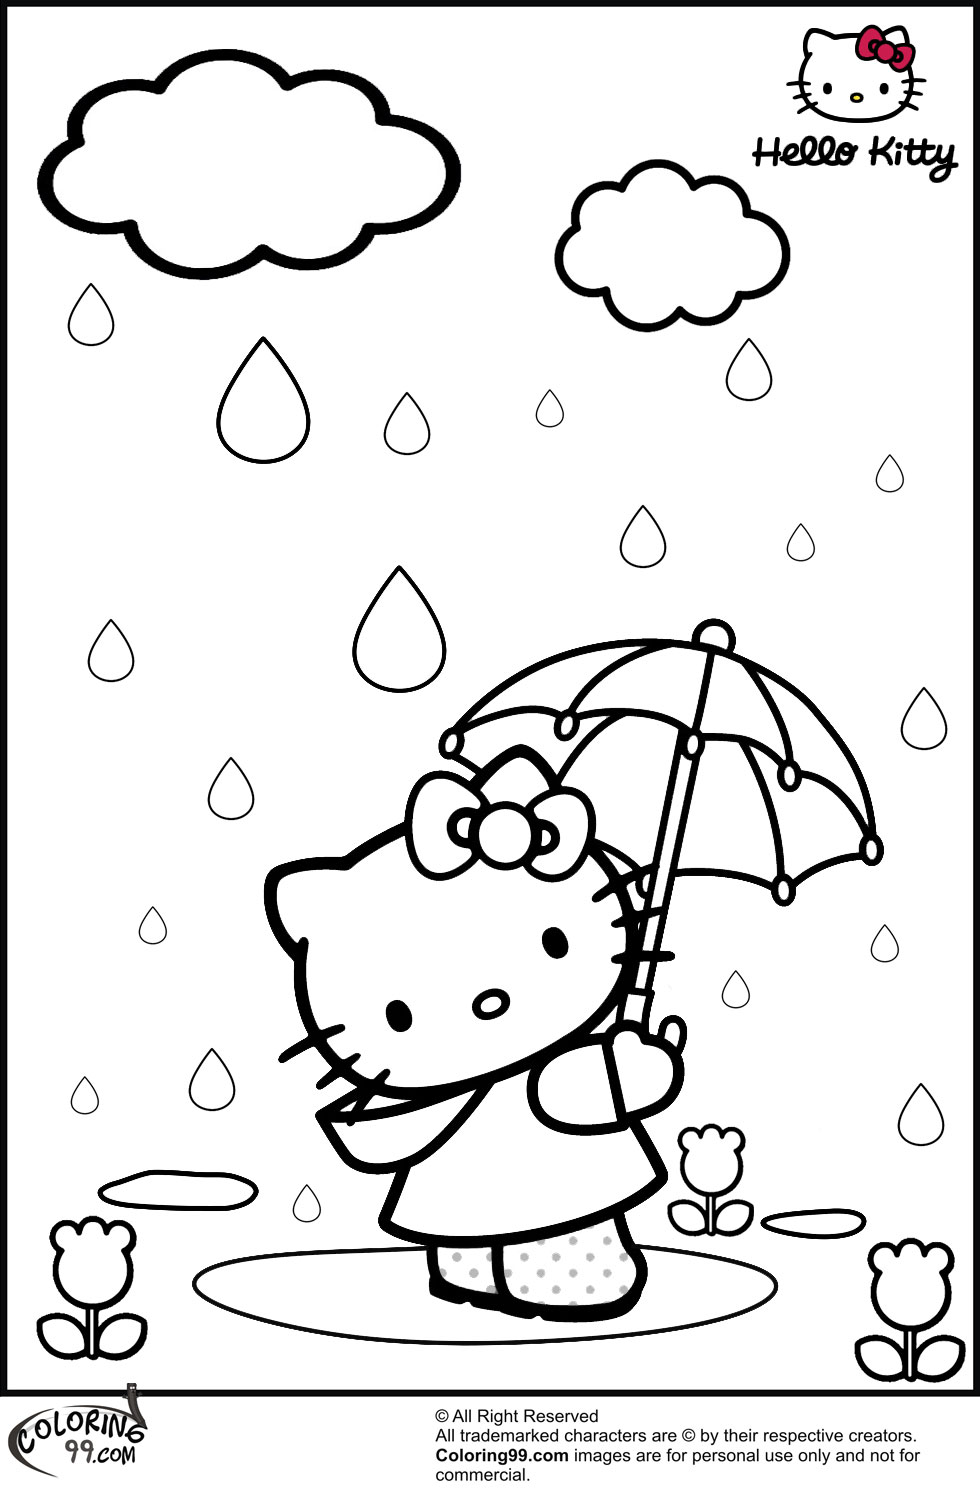 coloring kitty hello kitty coloring pages 2 hello kitty forever coloring kitty